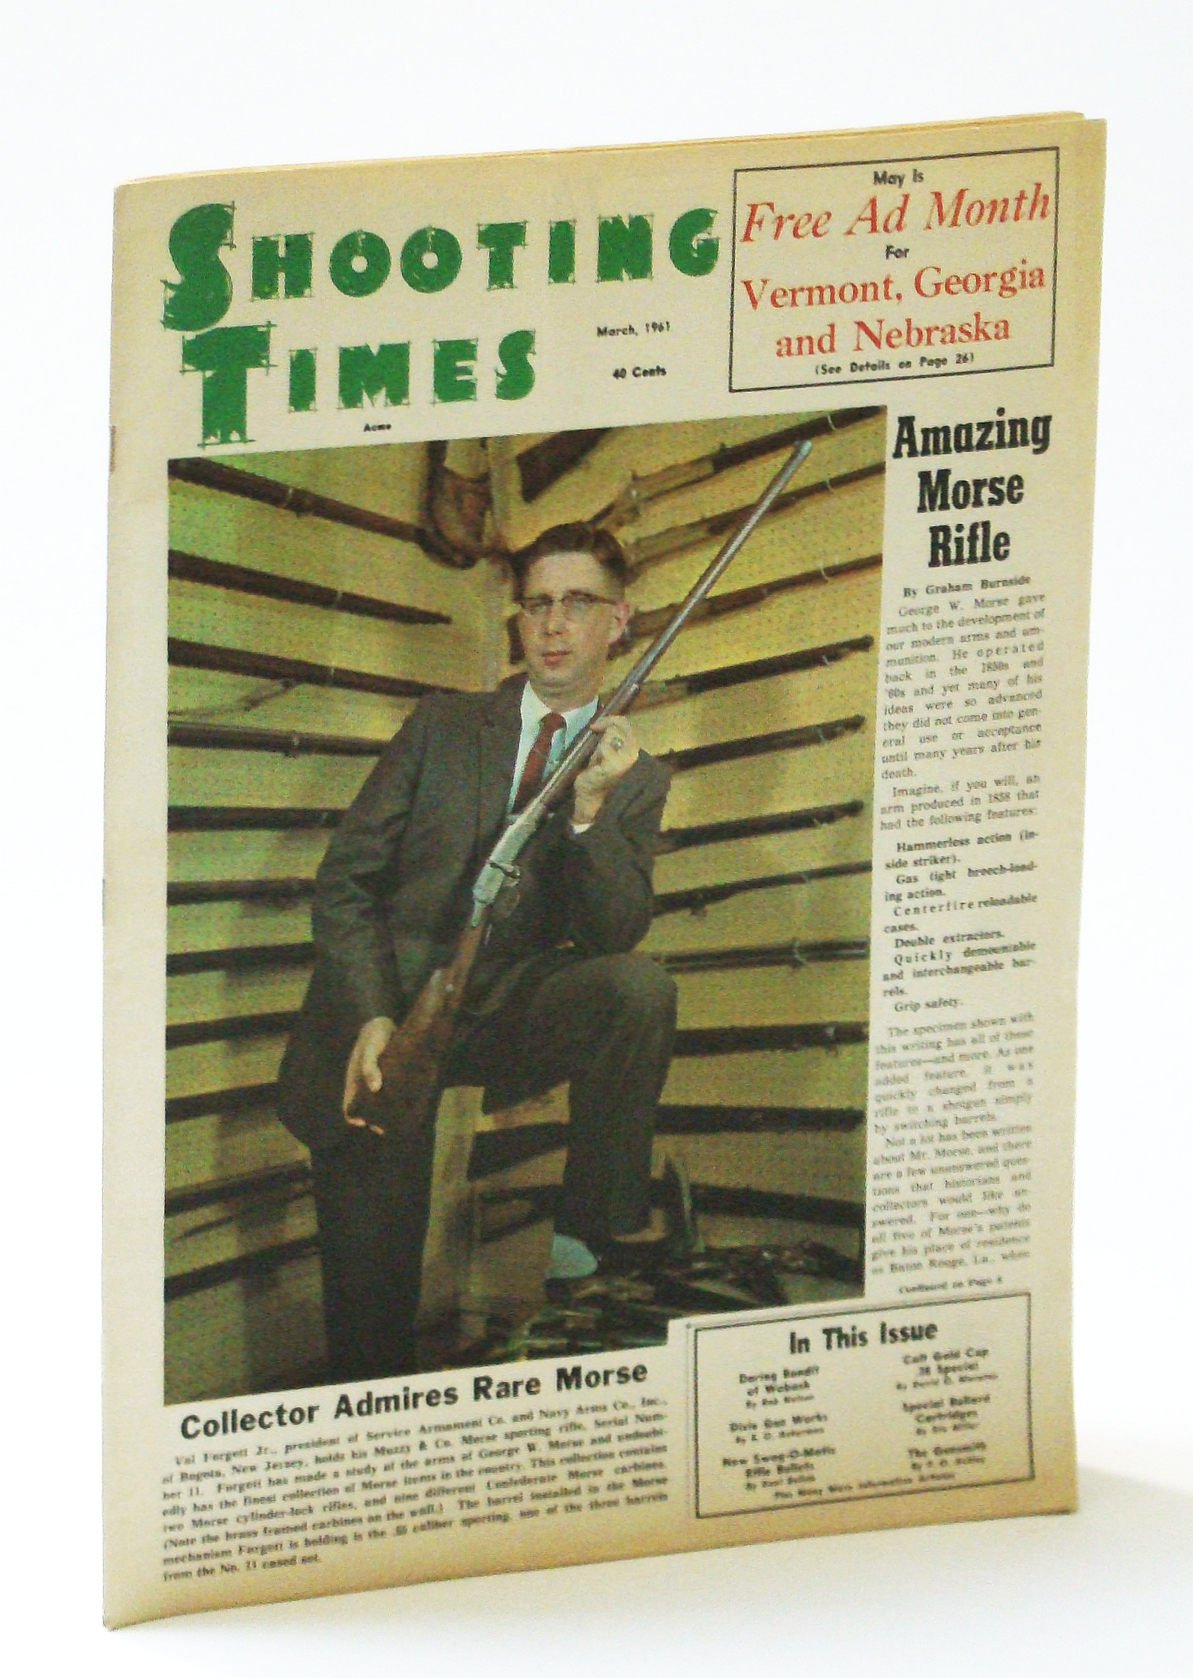 Image for Shooting Times Magazine, March (Mar.) 1961, Vol I, No. 12 - Val Forgett Jr. Cover Photo